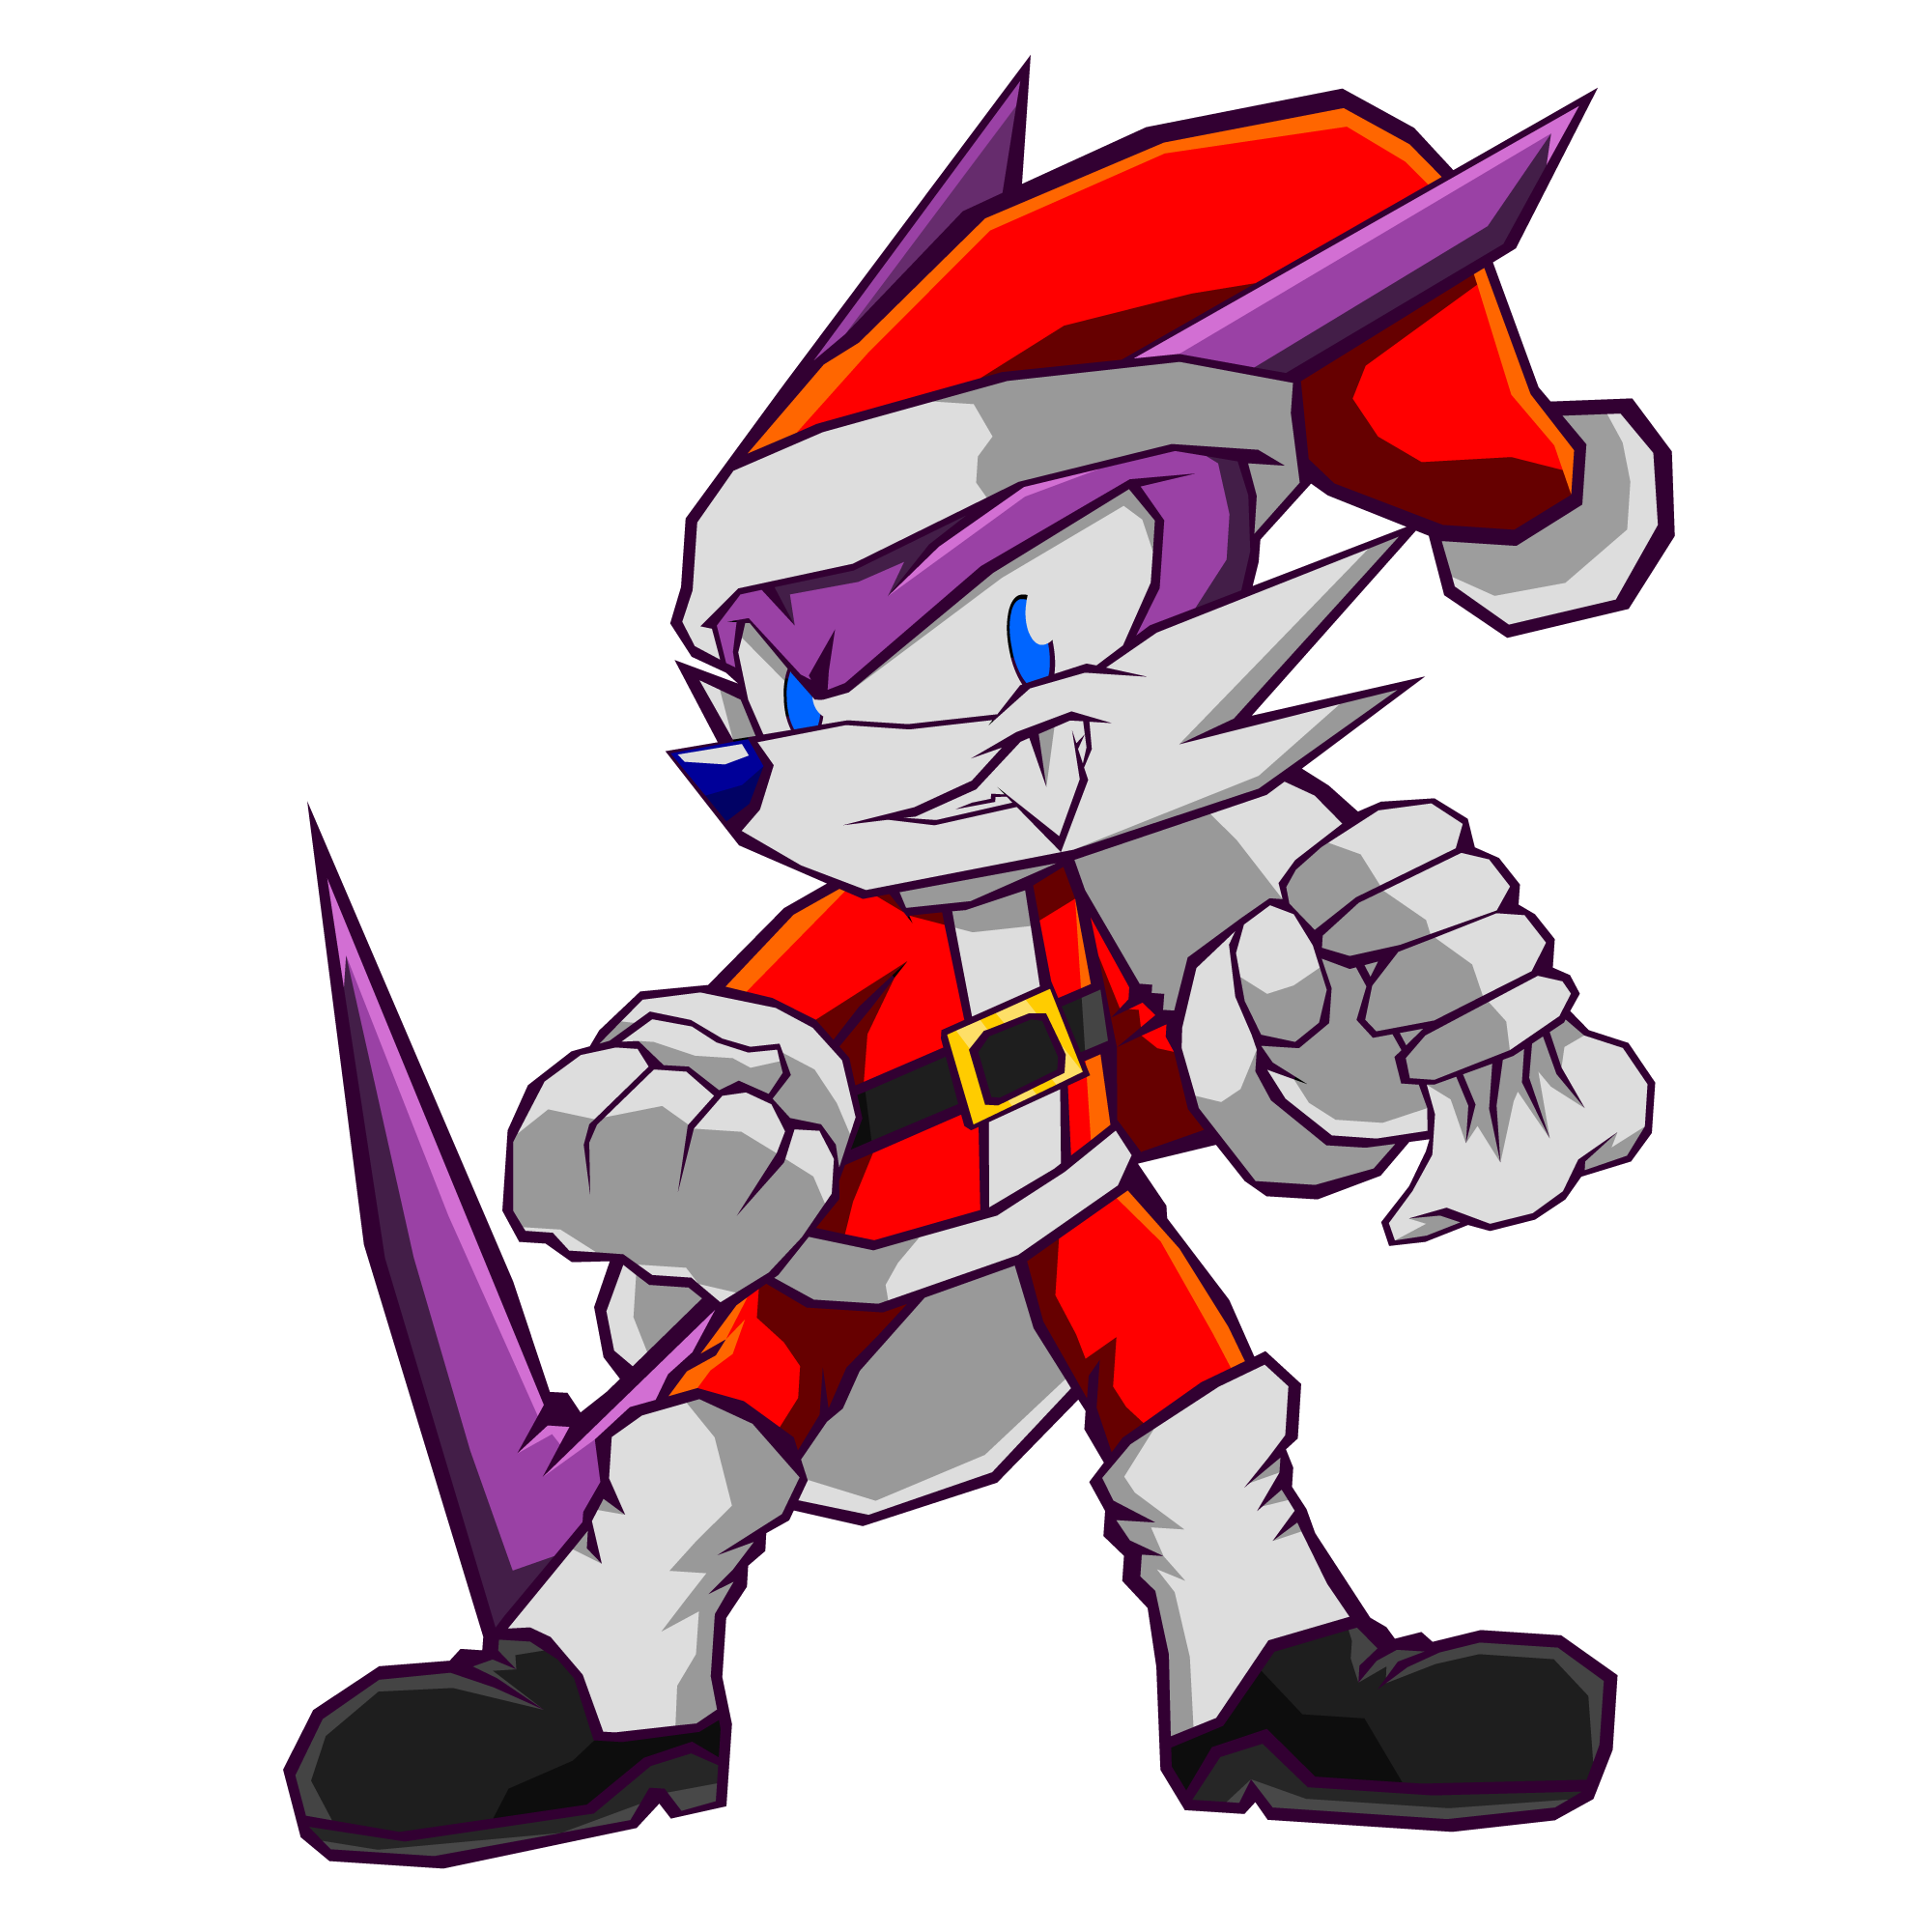 Christmas Fang - Sonic Battle by Cerberean on DeviantArt